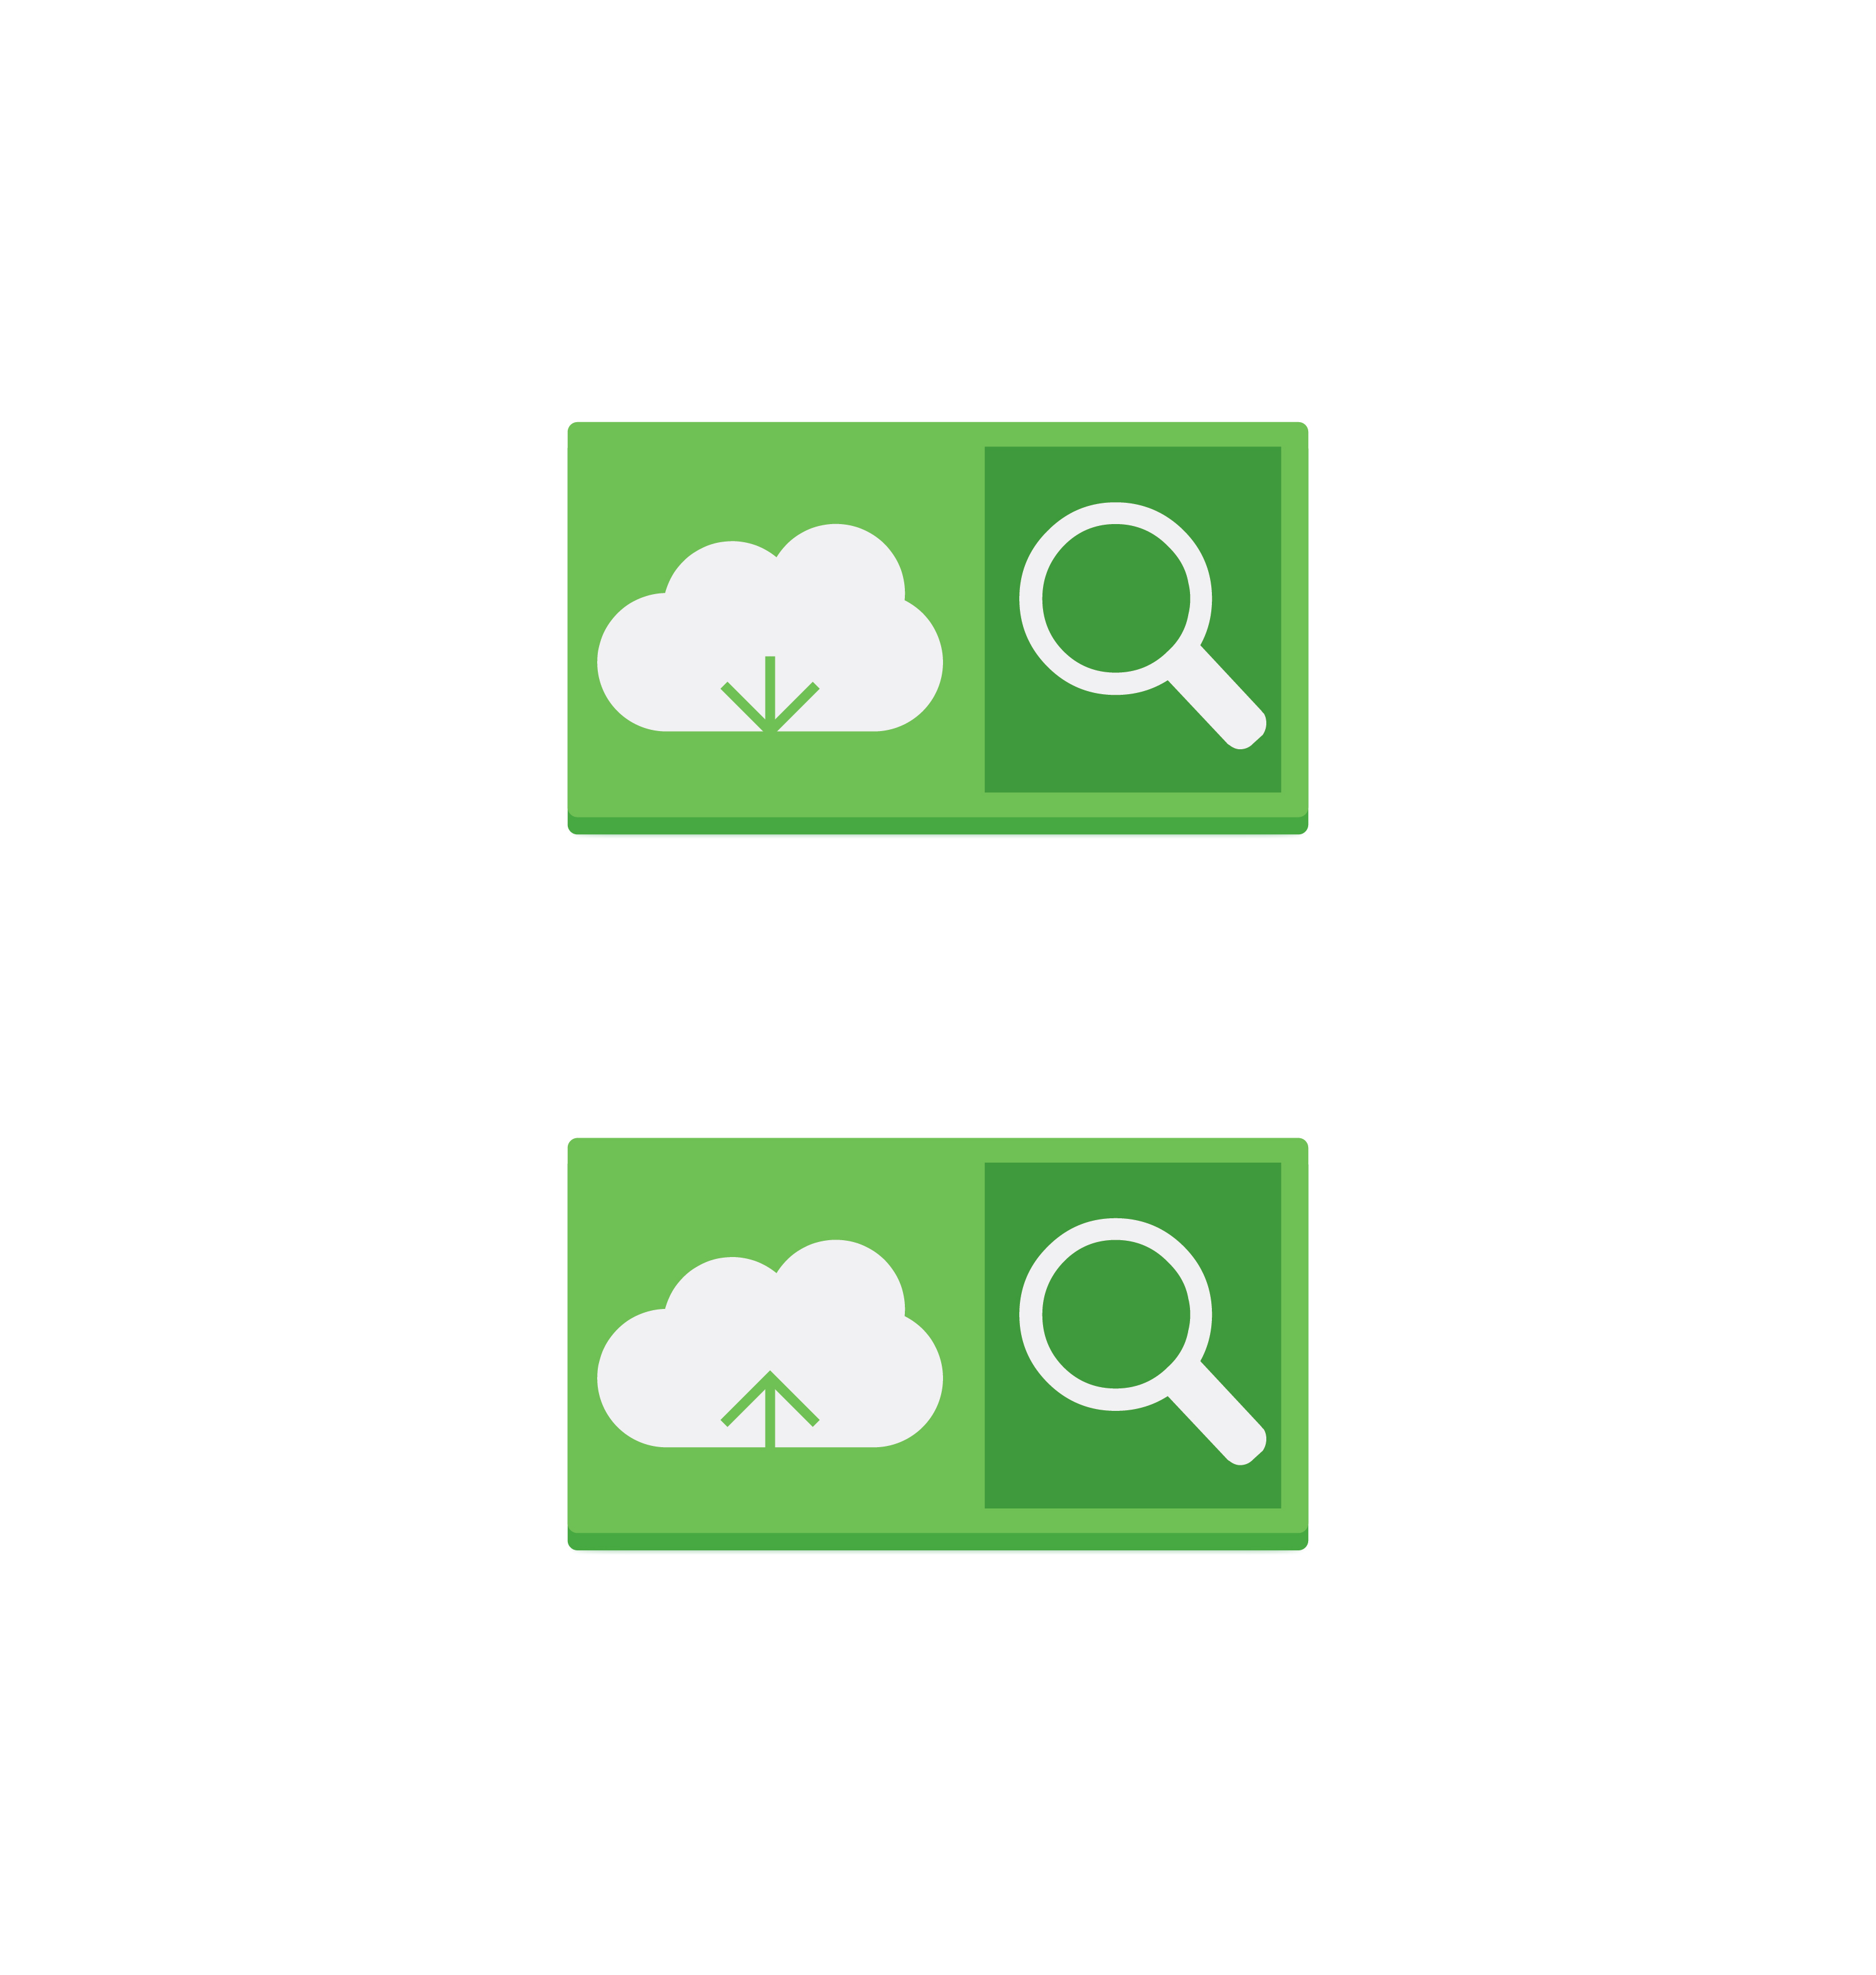 cloud download and upload icon 5